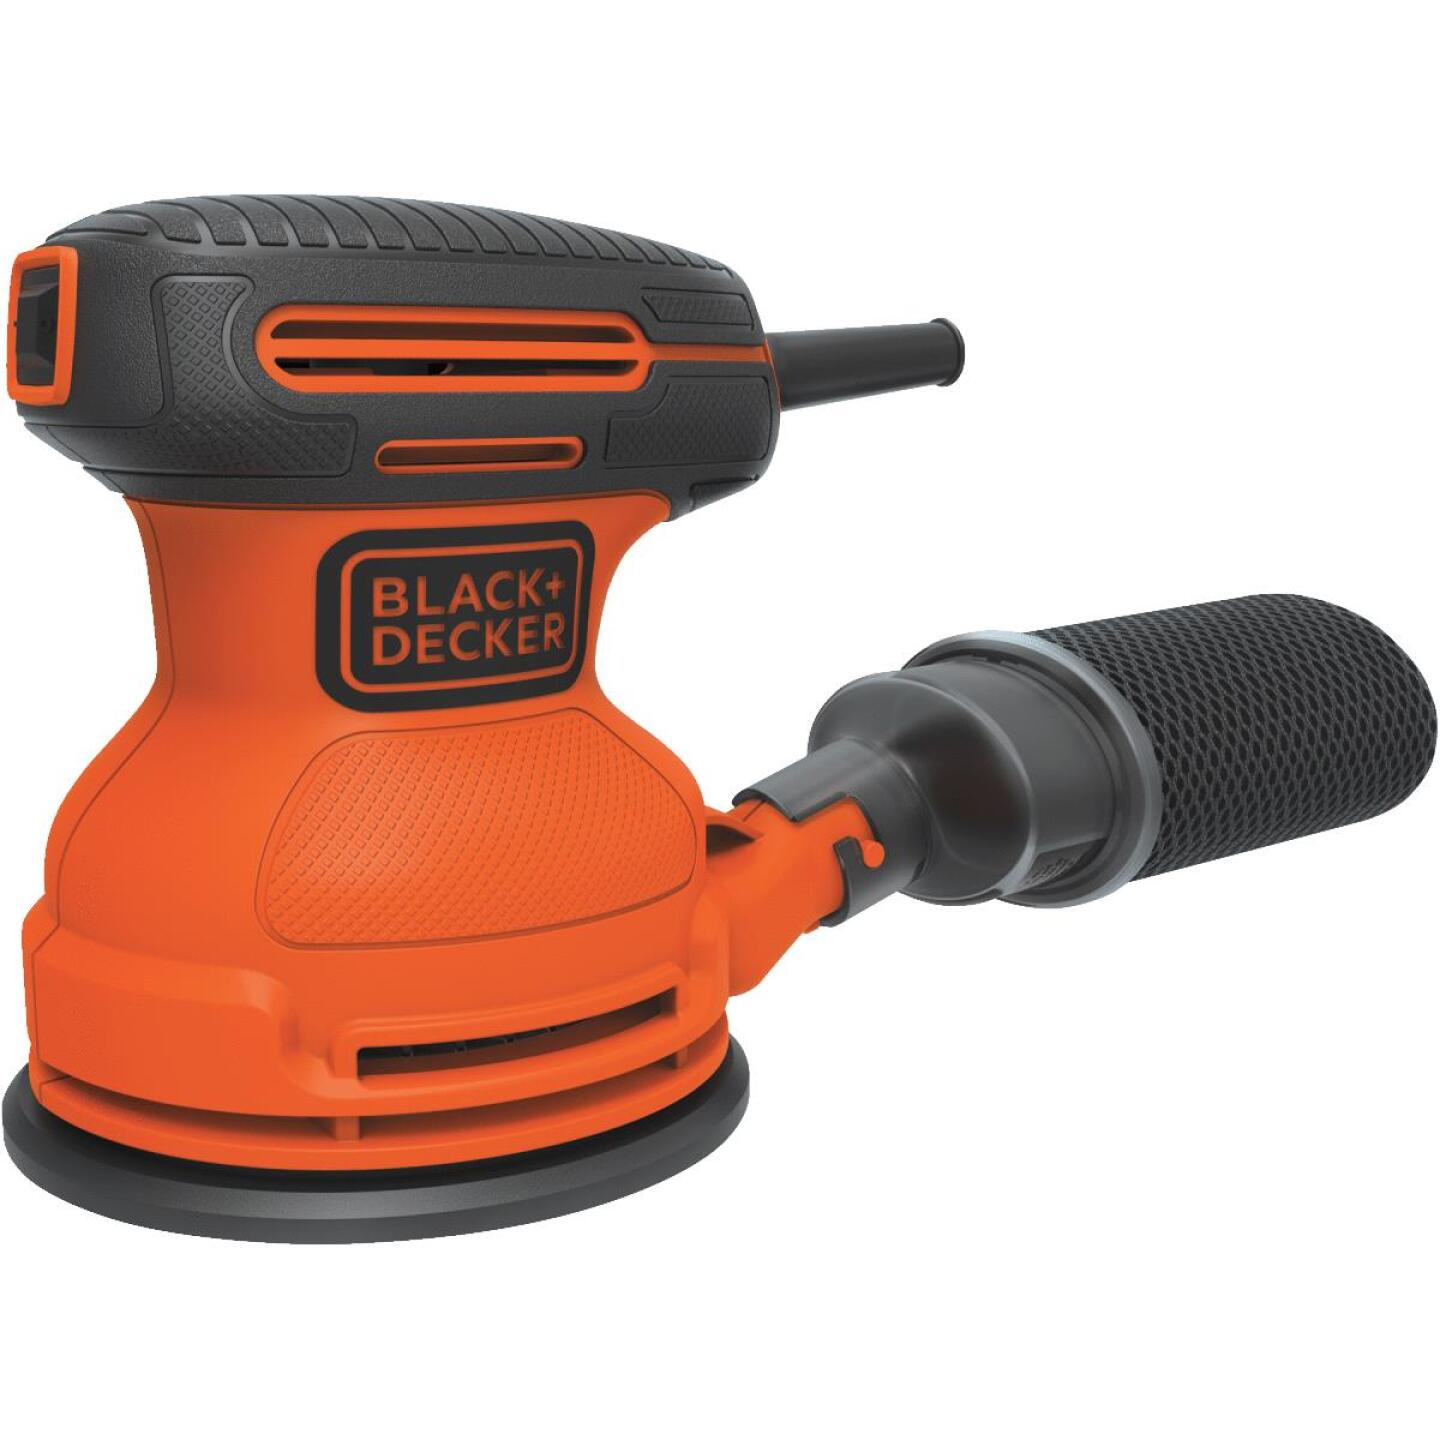 Black & Decker 5 In. 2.0A Random Orbit Finish Sander Image 3